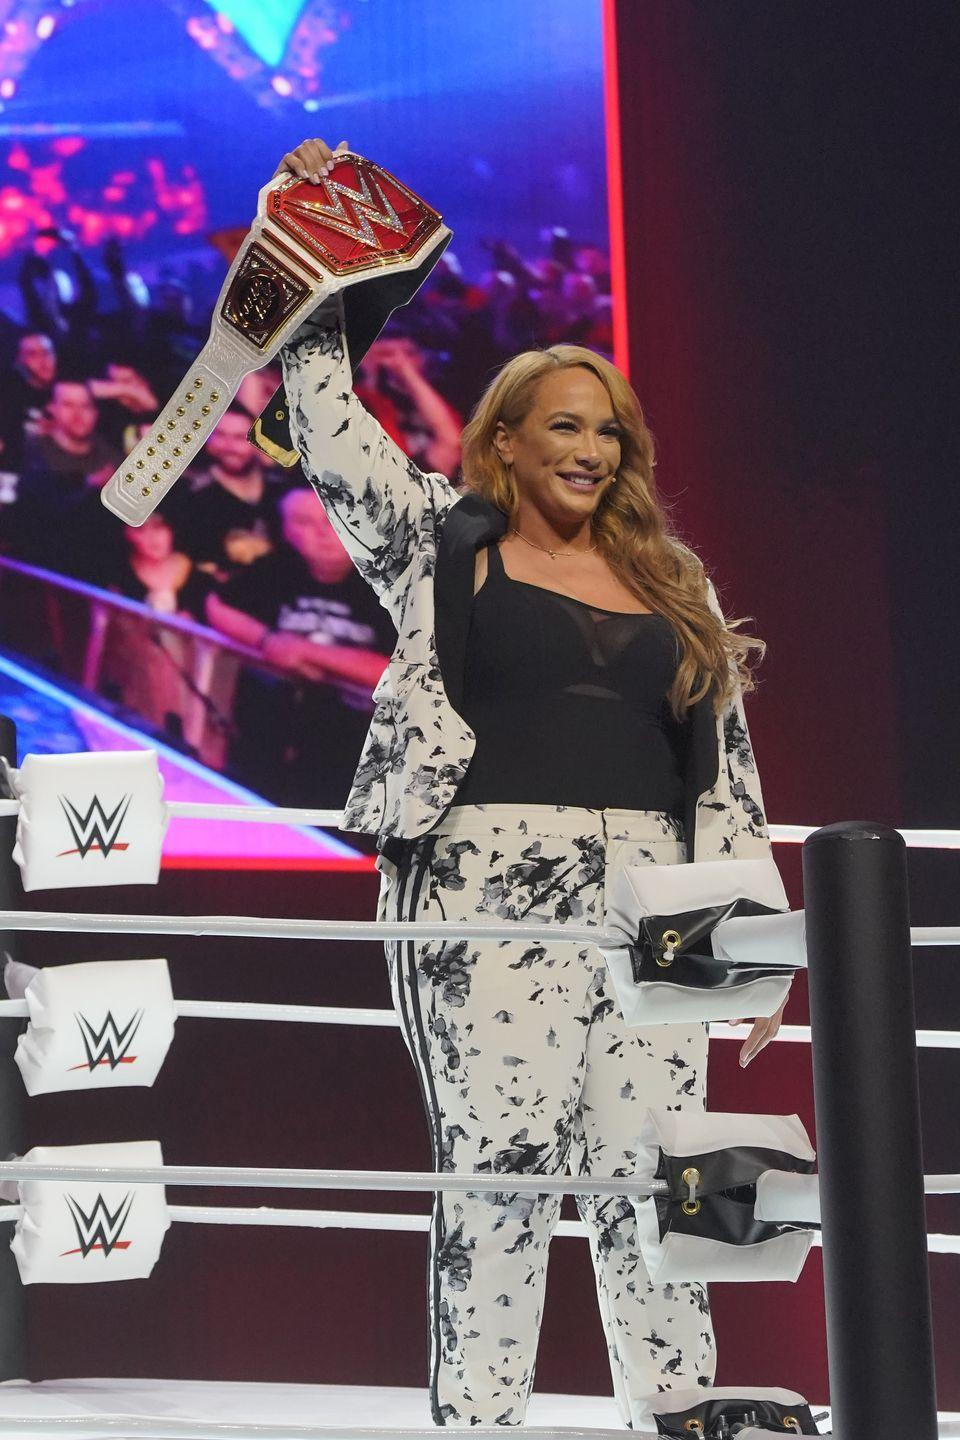 "<p>In a California town named Carmel, <a href=""https://www.thethings.com/rules-wwe-divas-have-to-follow/"" rel=""nofollow noopener"" target=""_blank"" data-ylk=""slk:high heels"" class=""link rapid-noclick-resp"">high heels</a> aren't allowed in the ring without a permit. </p>"